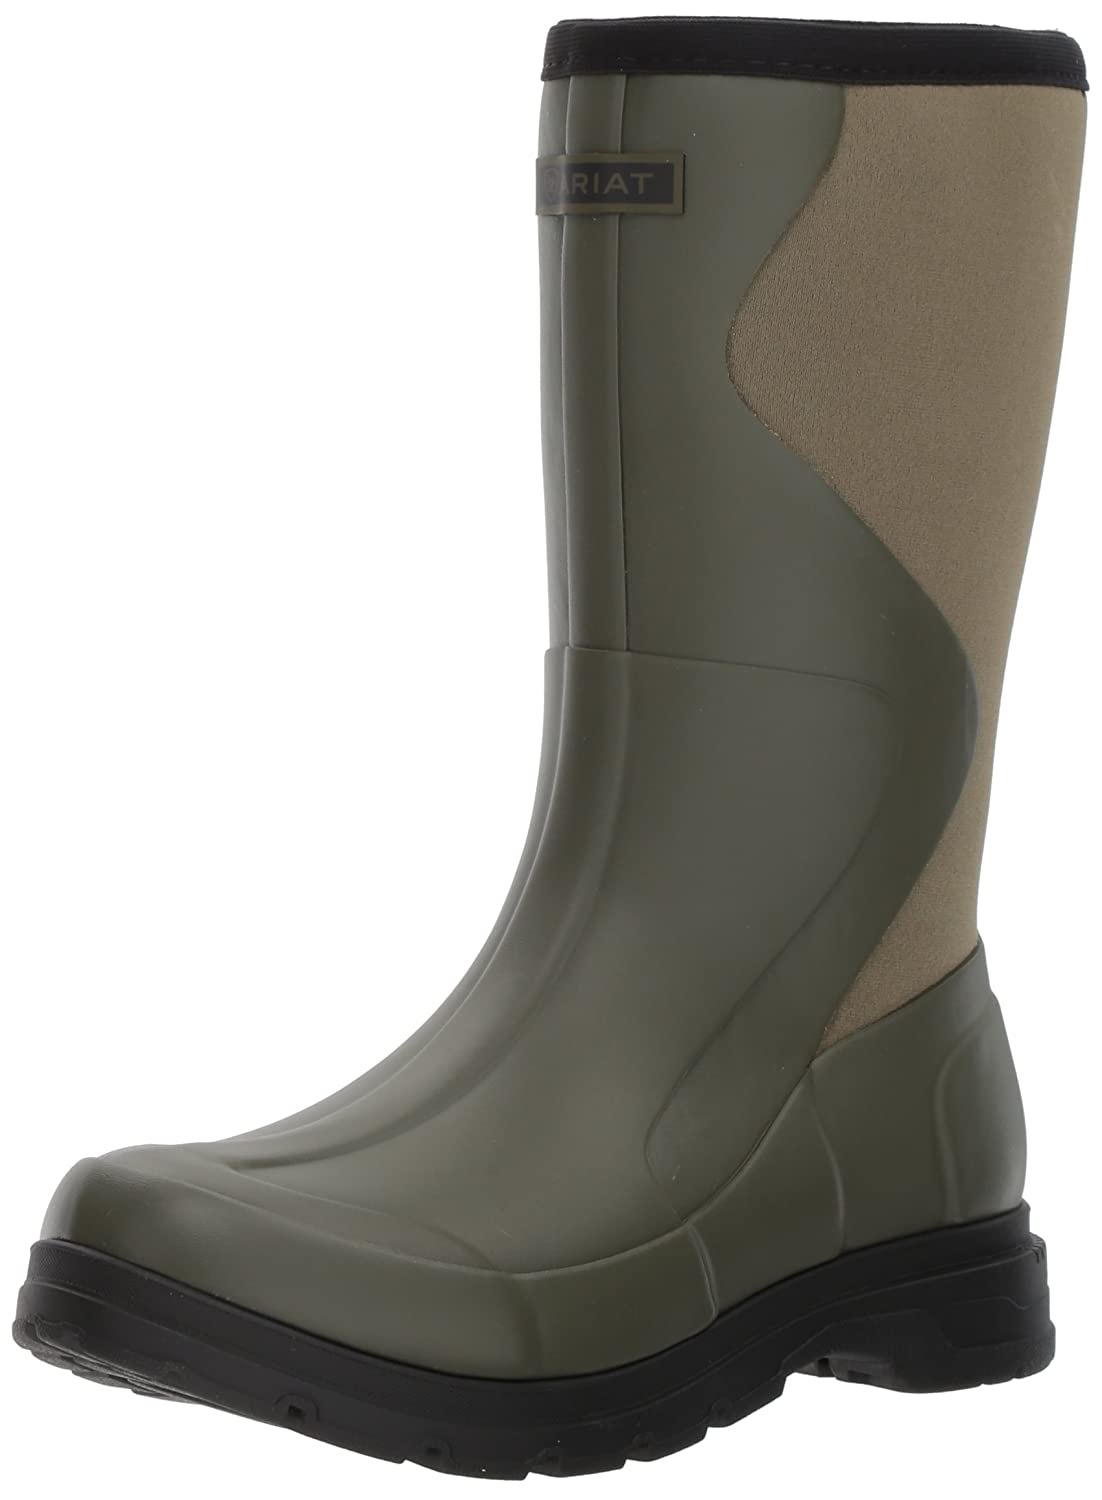 Ariat Women's Springfield Rubber Work Boot B01MSD1DT6 8 B(M) US|Olive Green